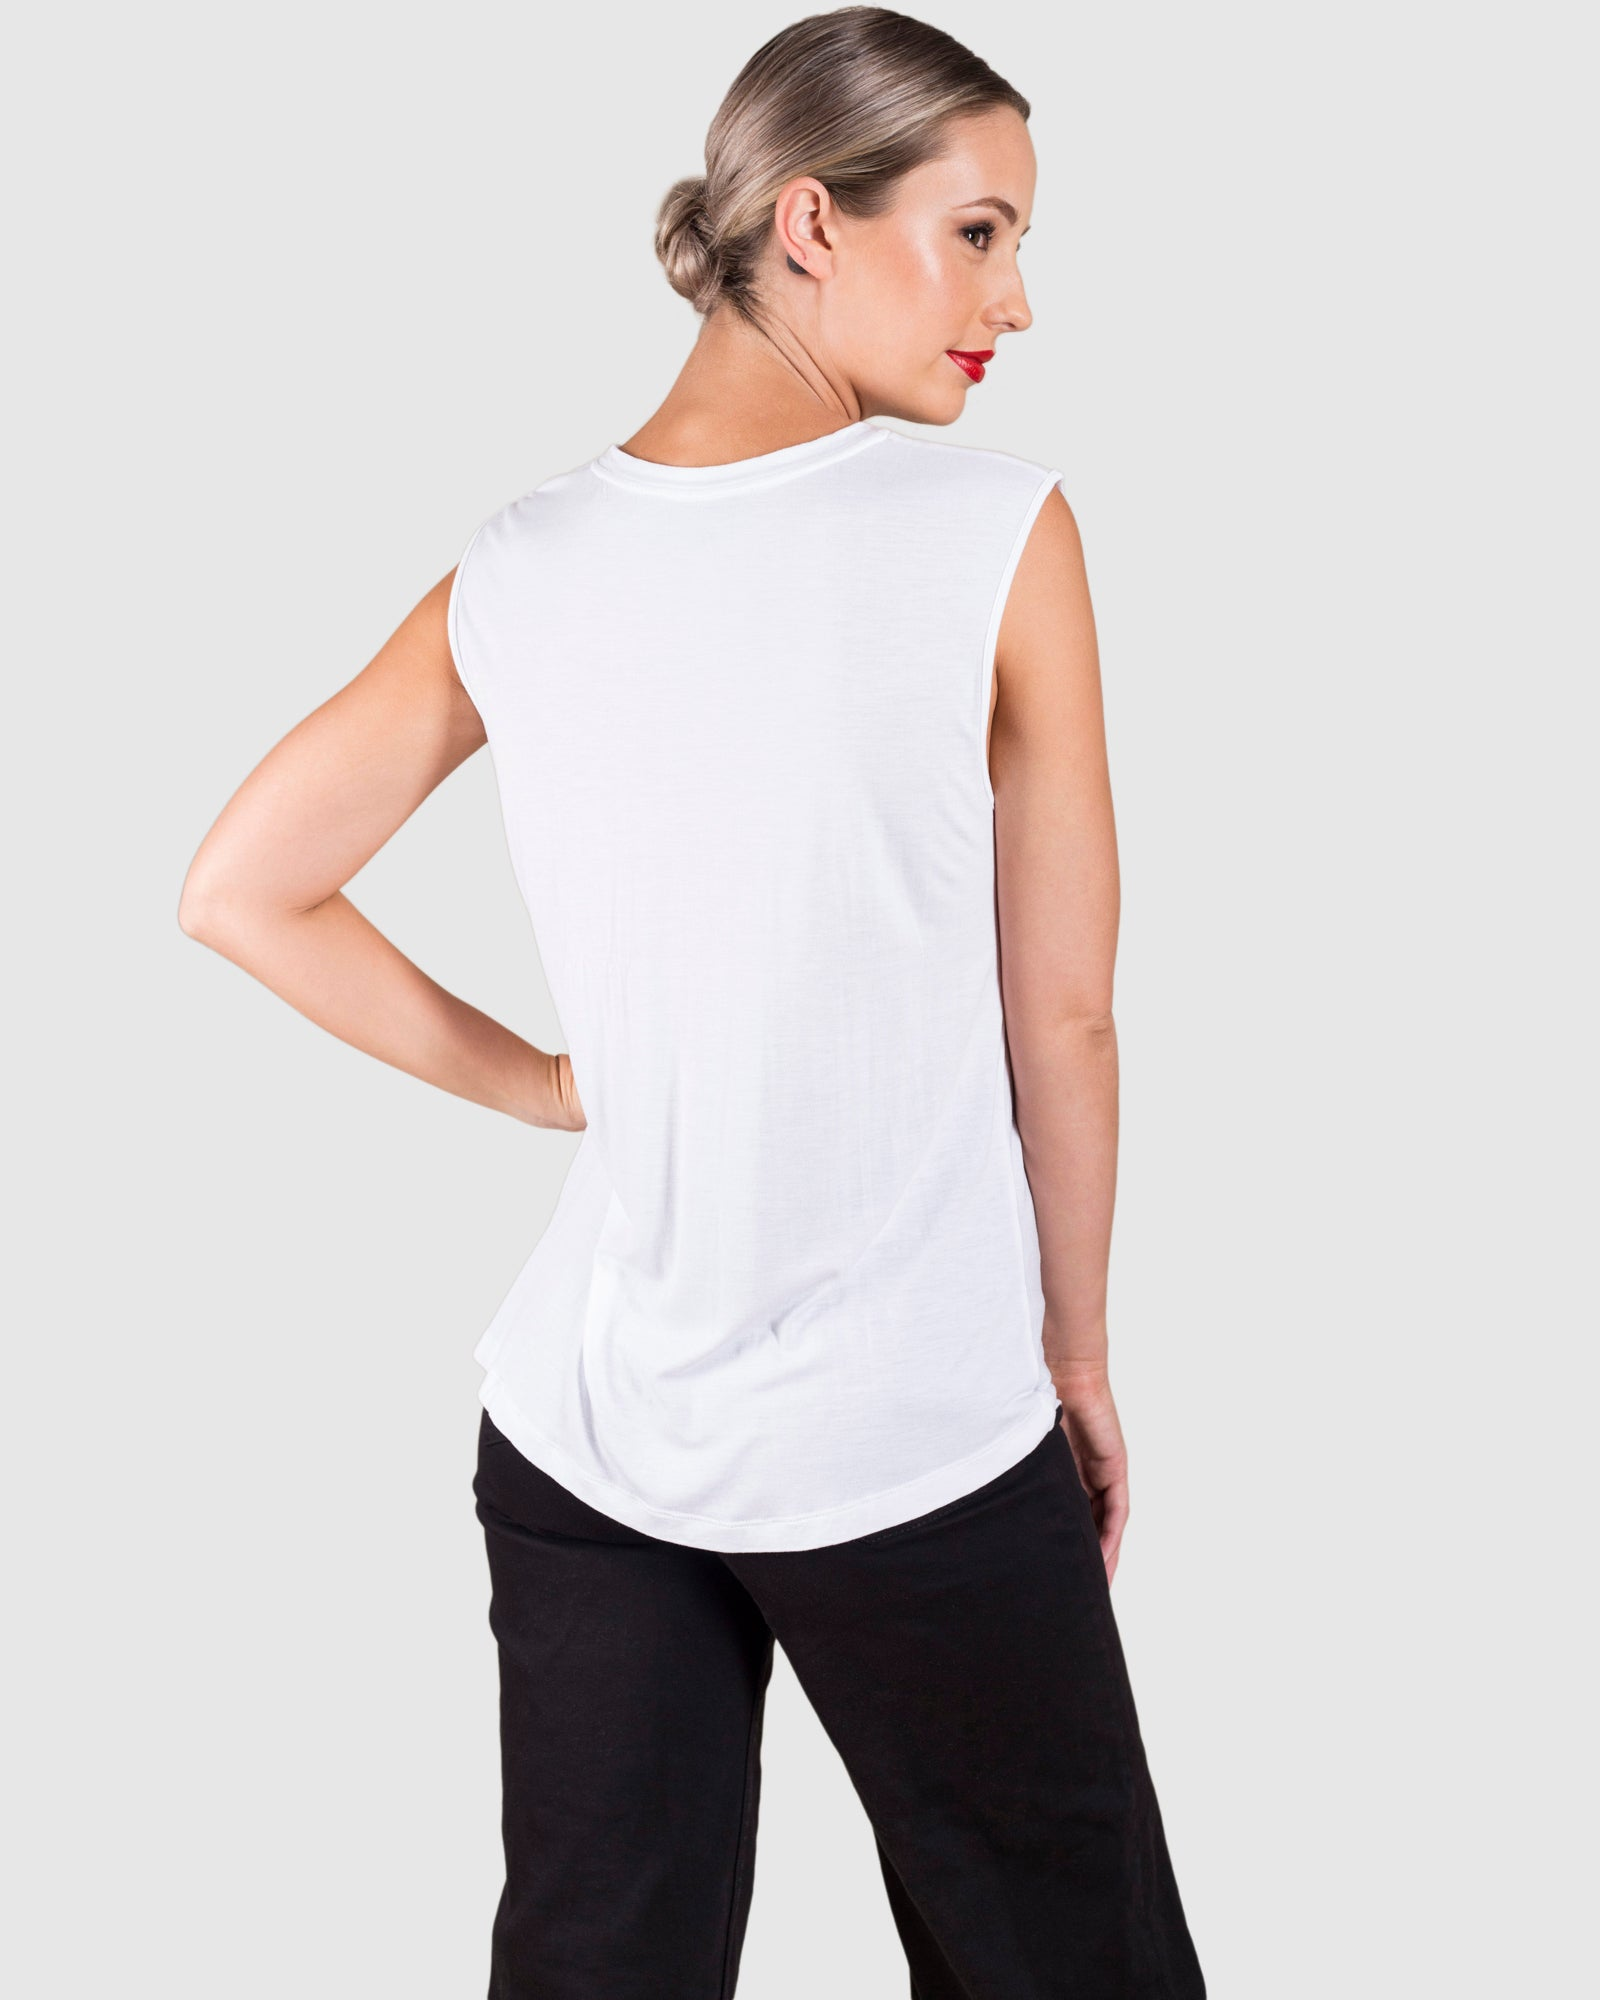 THE MUSCLE SLEEVELESS T-SHIRT